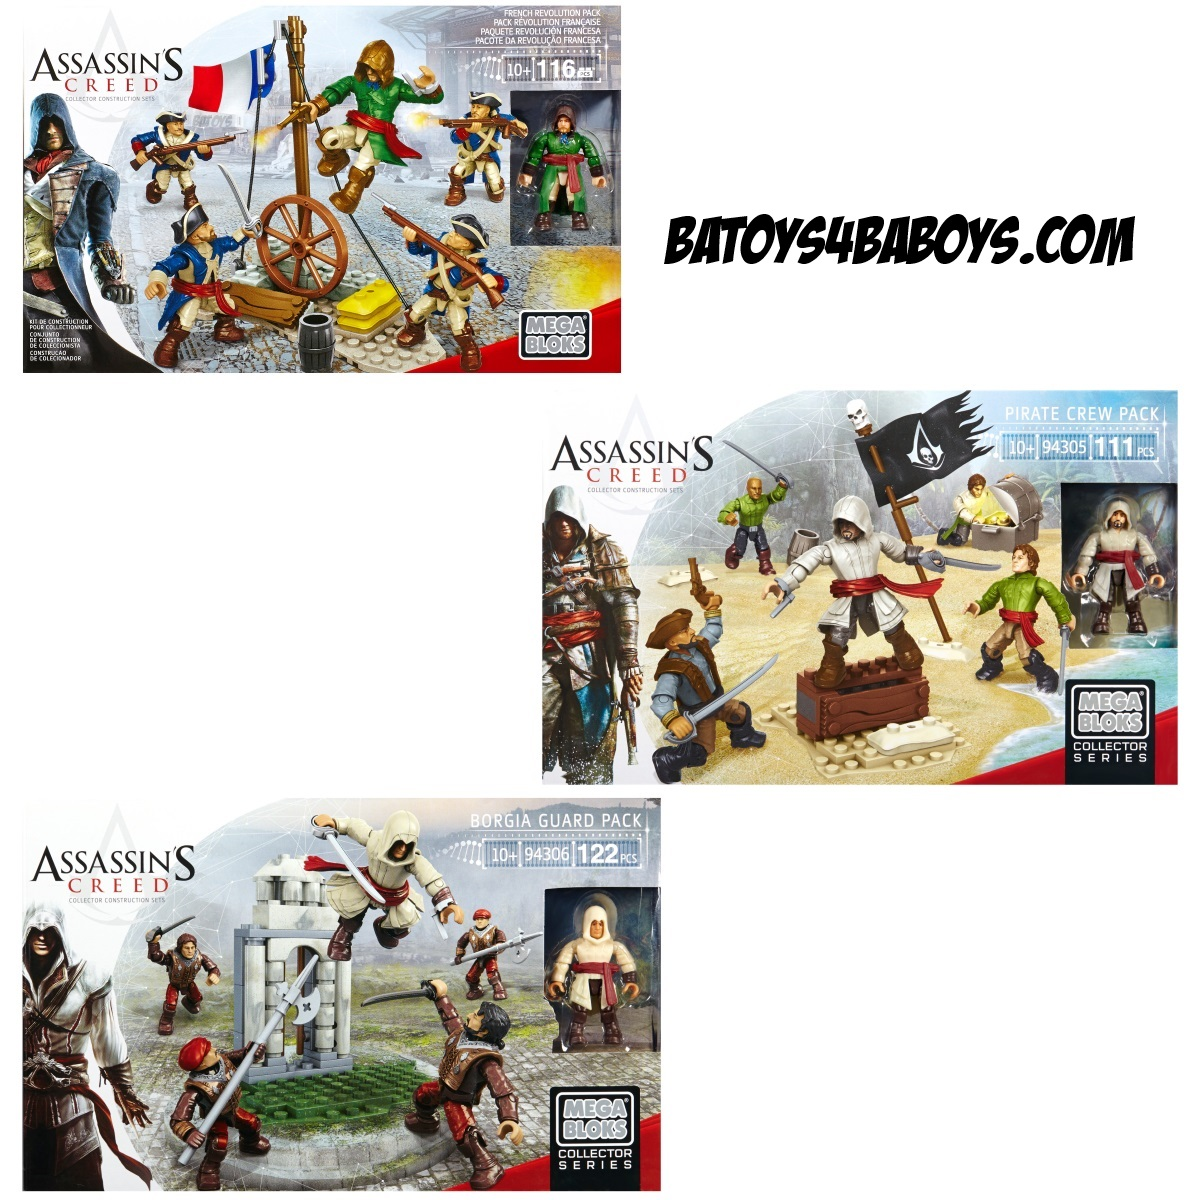 2014 Assassin's Creed Mega Bloks Figure Packs Bundle of Three, French Revolution, Pirate Crew Pack, Borgia Guard, Figure Packs